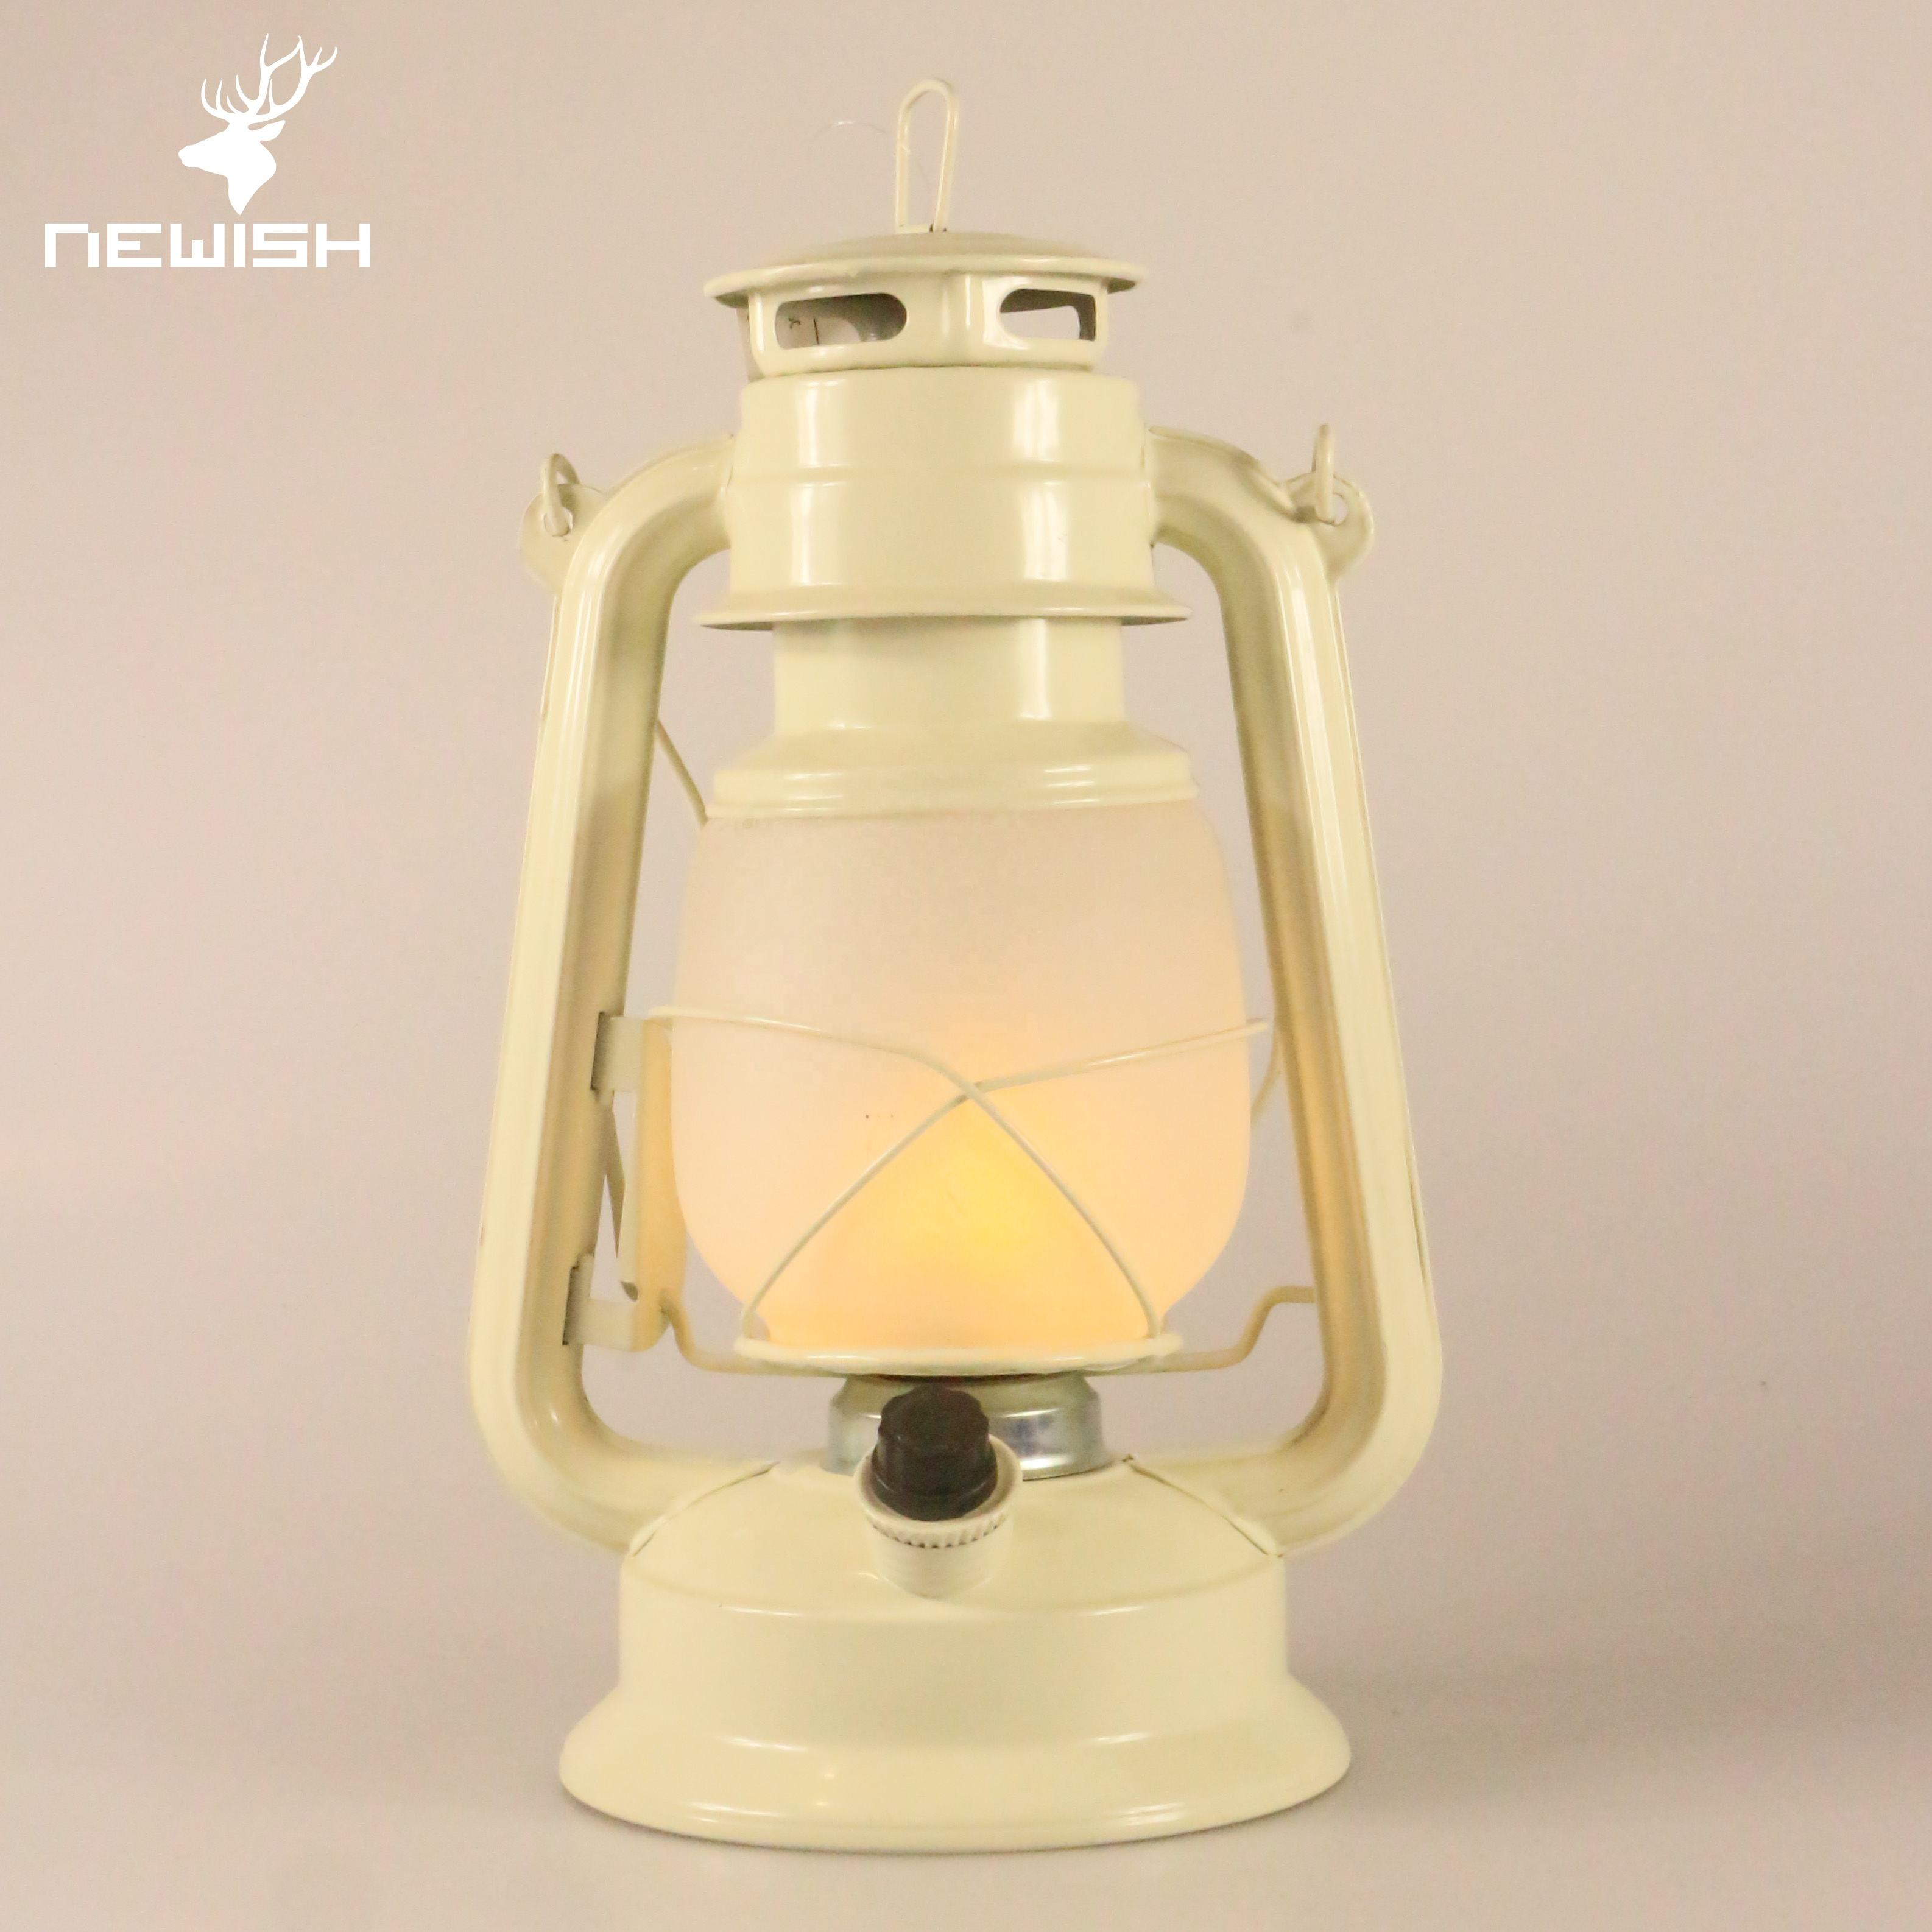 Kanlong hot selling China old fashion battery powered lights safe portable led solar camping lantern for hiking camp